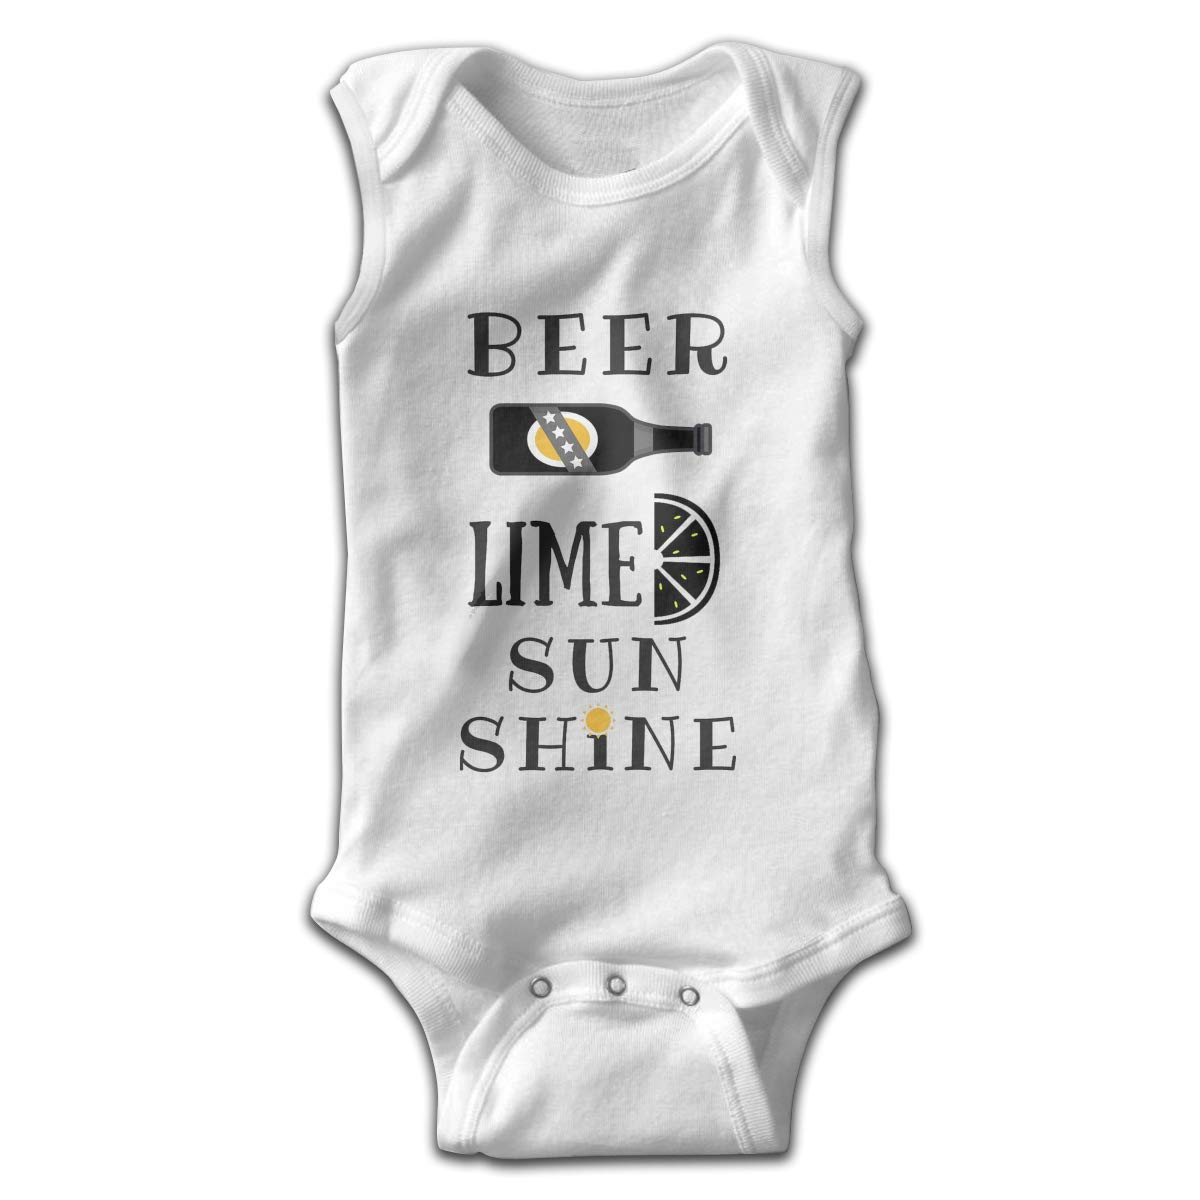 Efbj Toddler Baby Girls Rompers Sleeveless Cotton Jumpsuit,Beer Lime and Sunshine Outfit Spring Pajamas